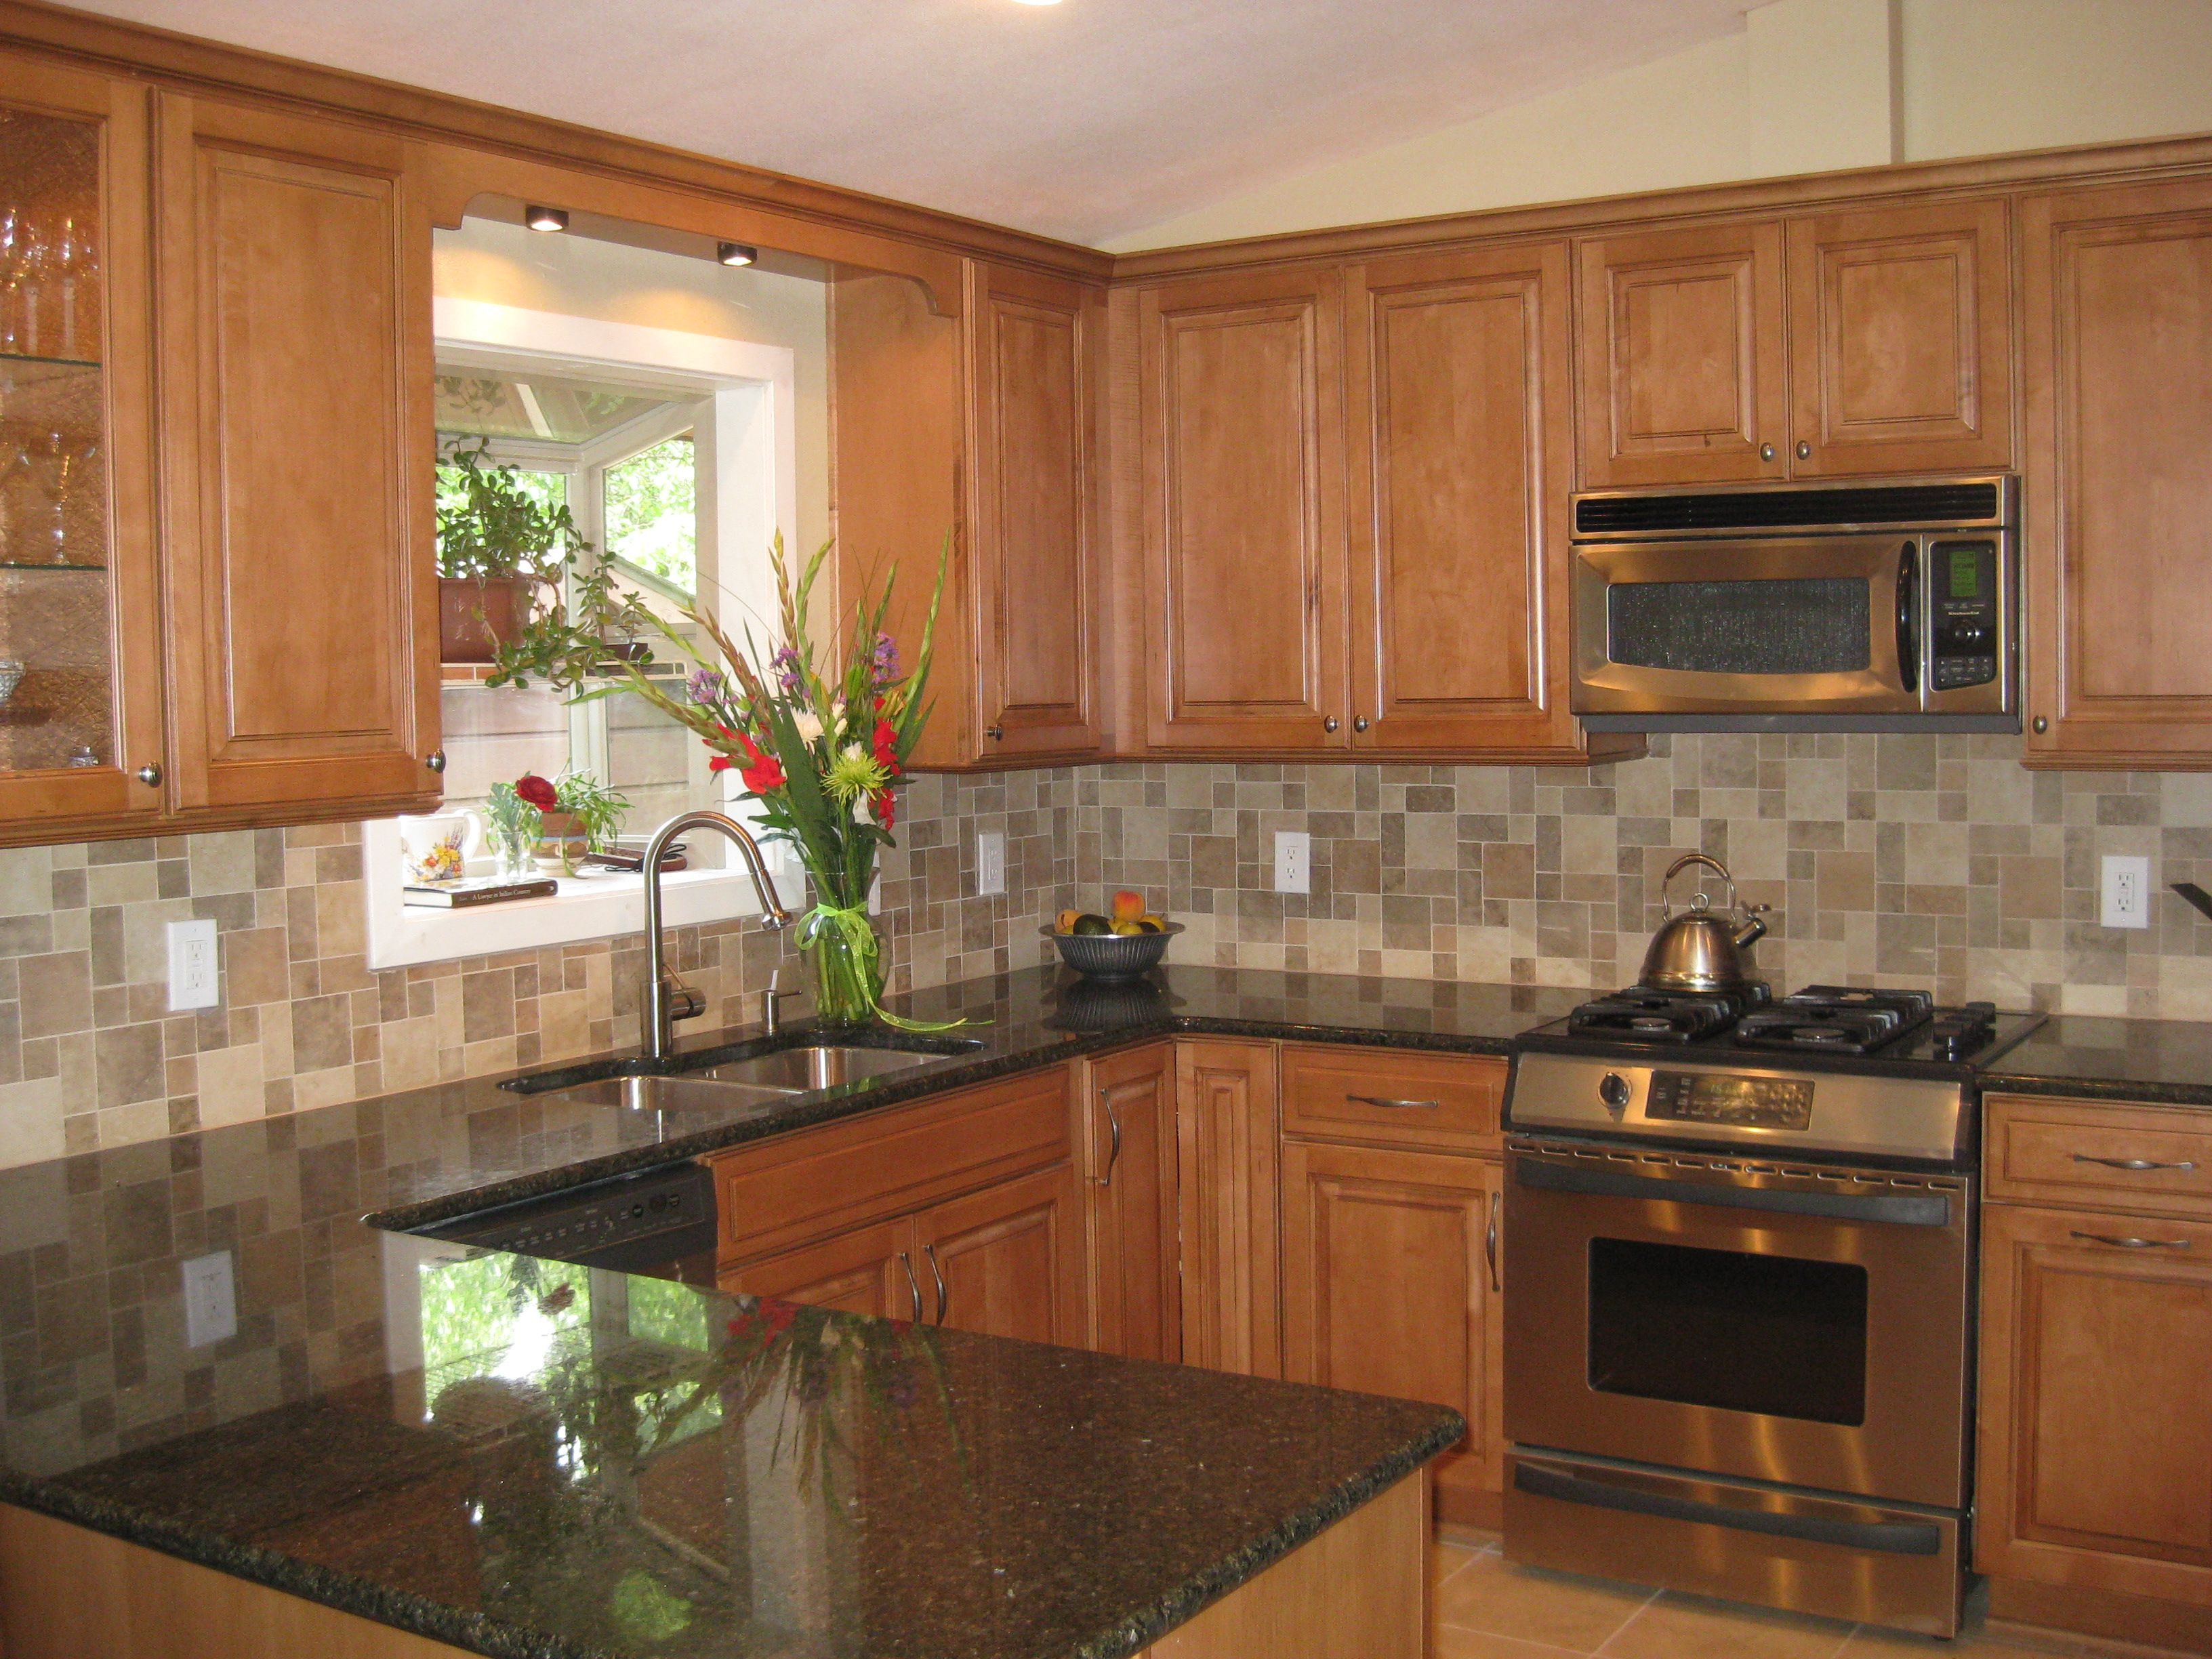 Maple Kitchen Cabinets With Marble Countertops Light Maple Kitchen Cabinets With Granite Countertops